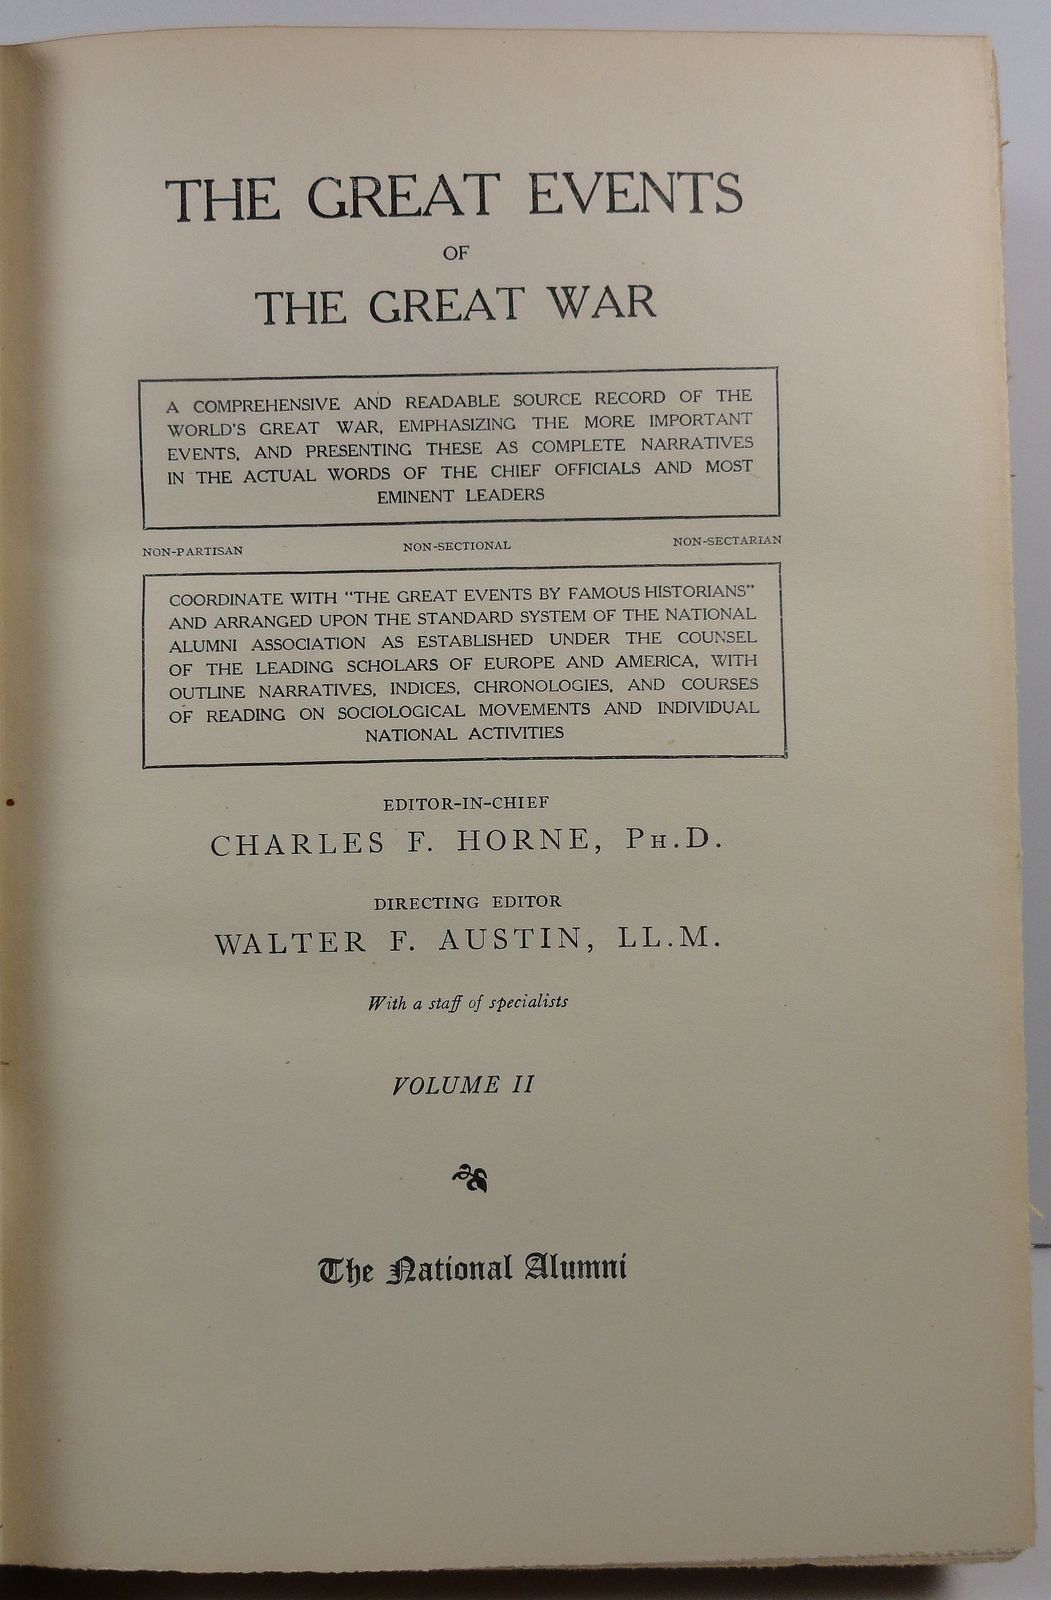 The Great Events of The Great War Charles F. Horne Vol II